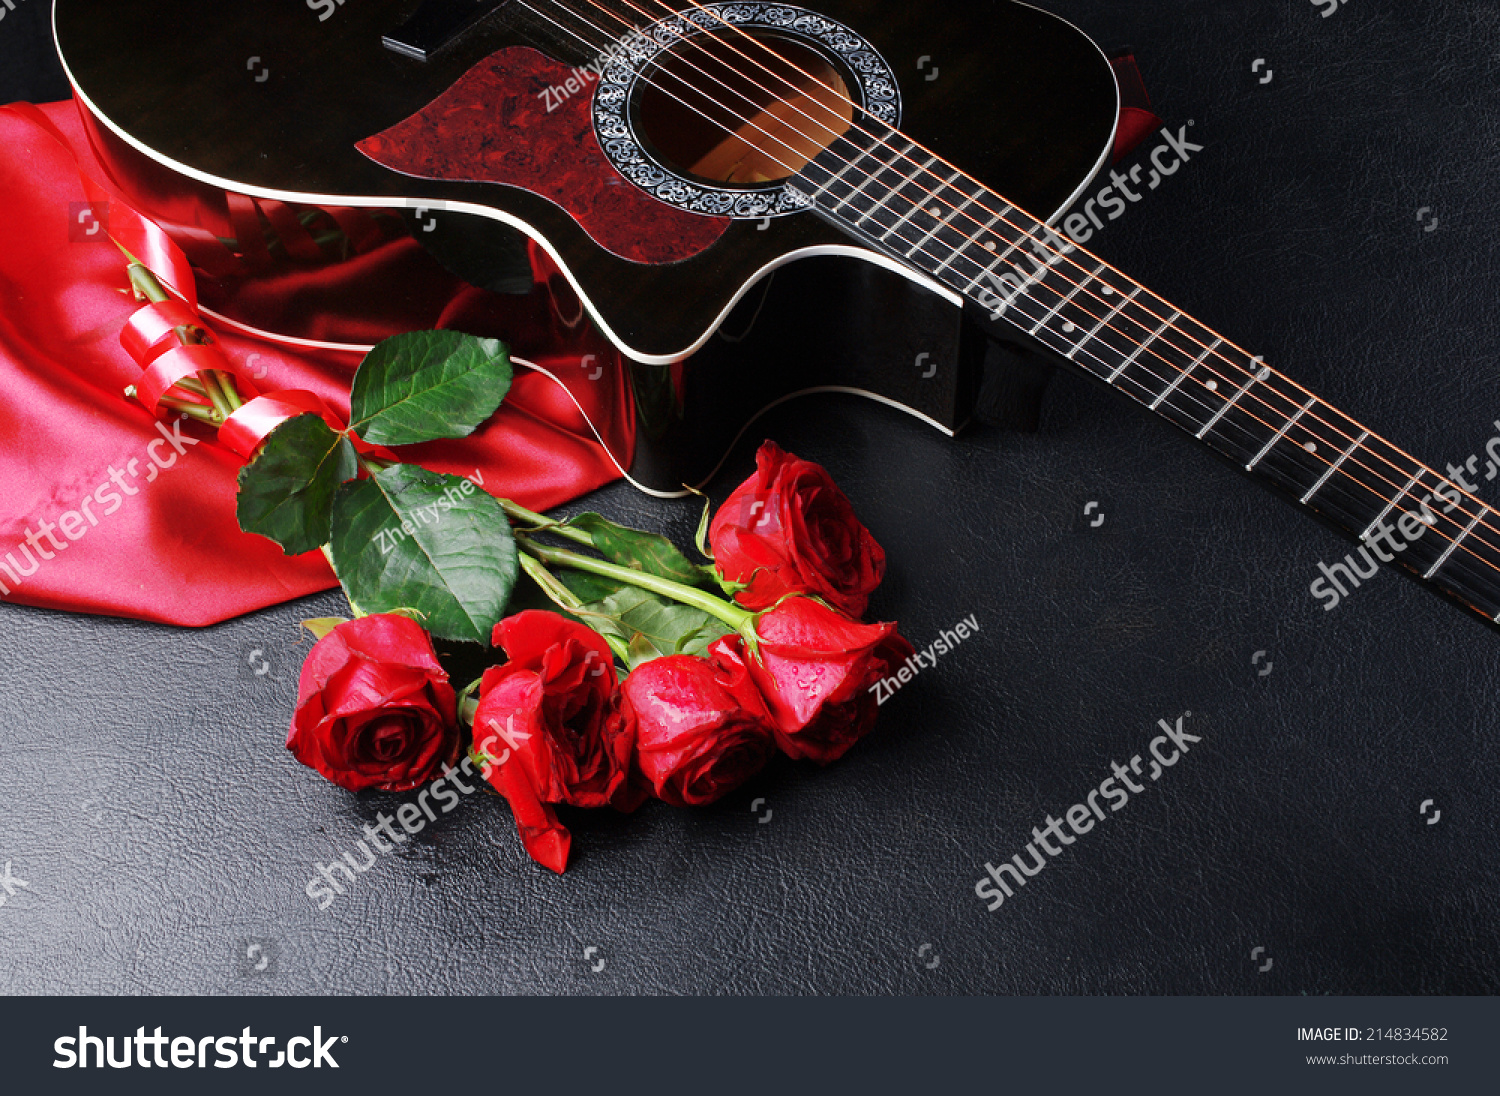 Five Red Roses Guitar Drapery On Stock Photo Edit Now 214834582